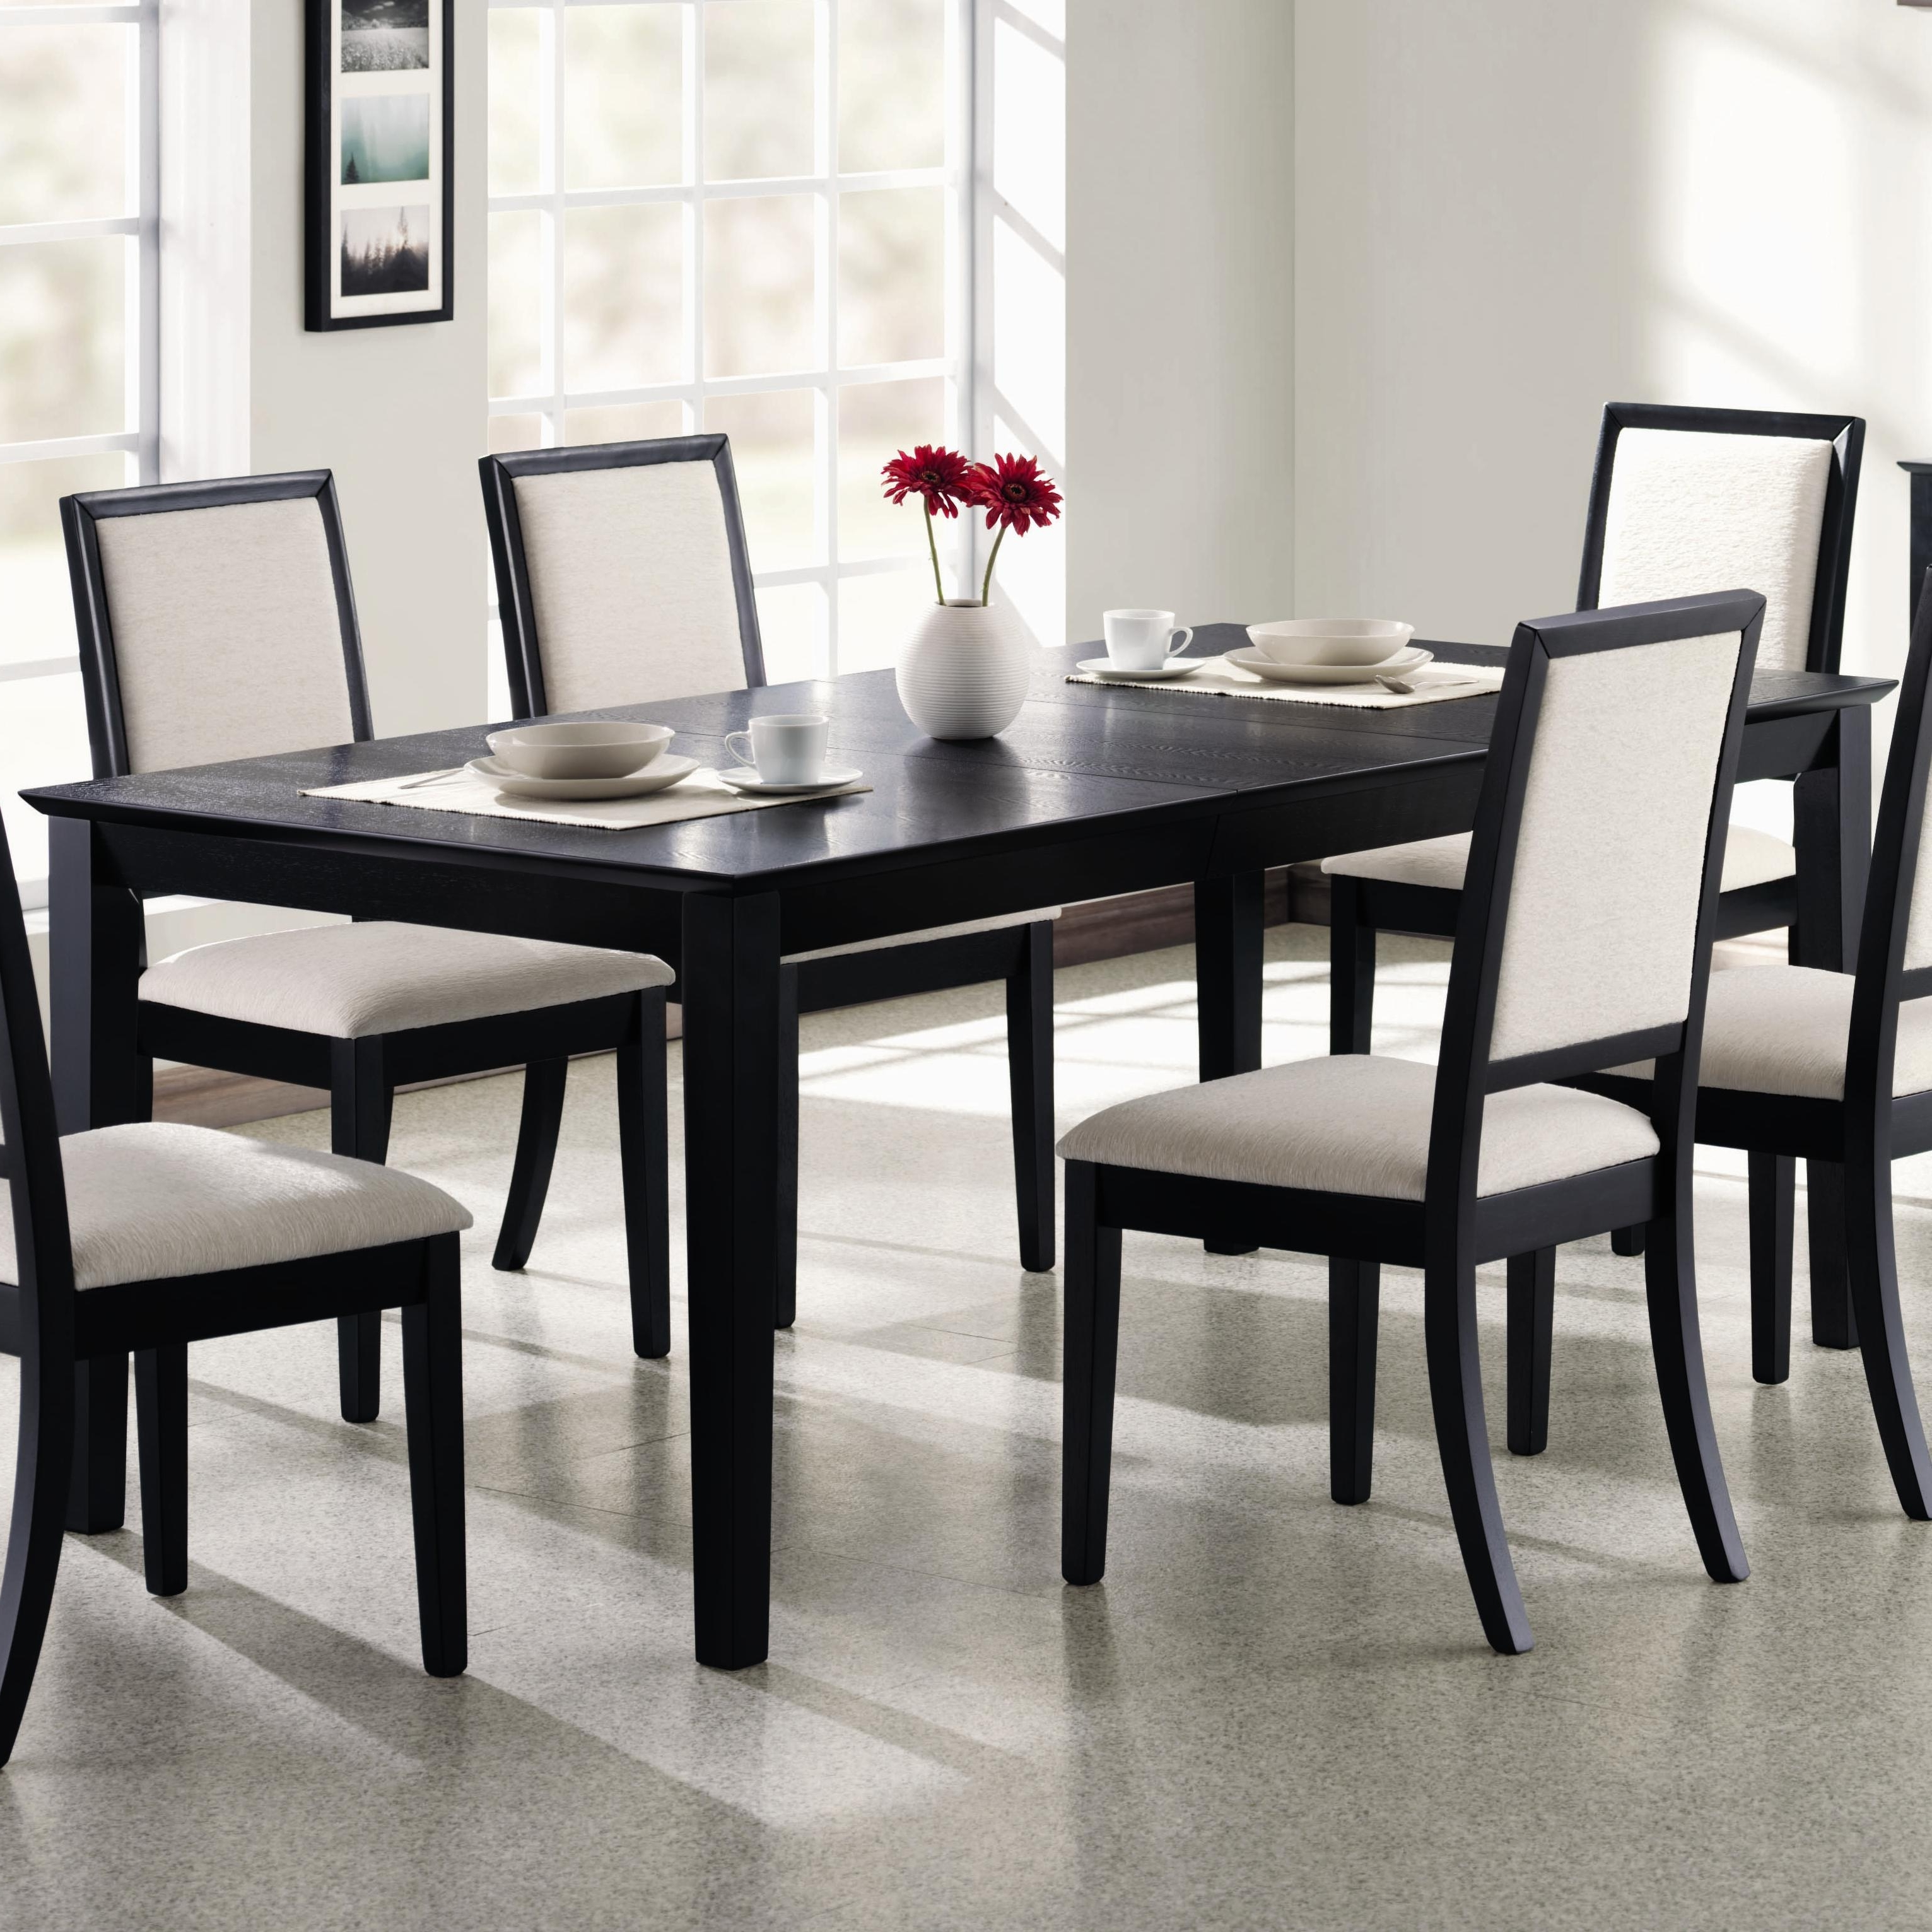 Dunk With Kitchen Dining Tables And Chairs (View 4 of 25)